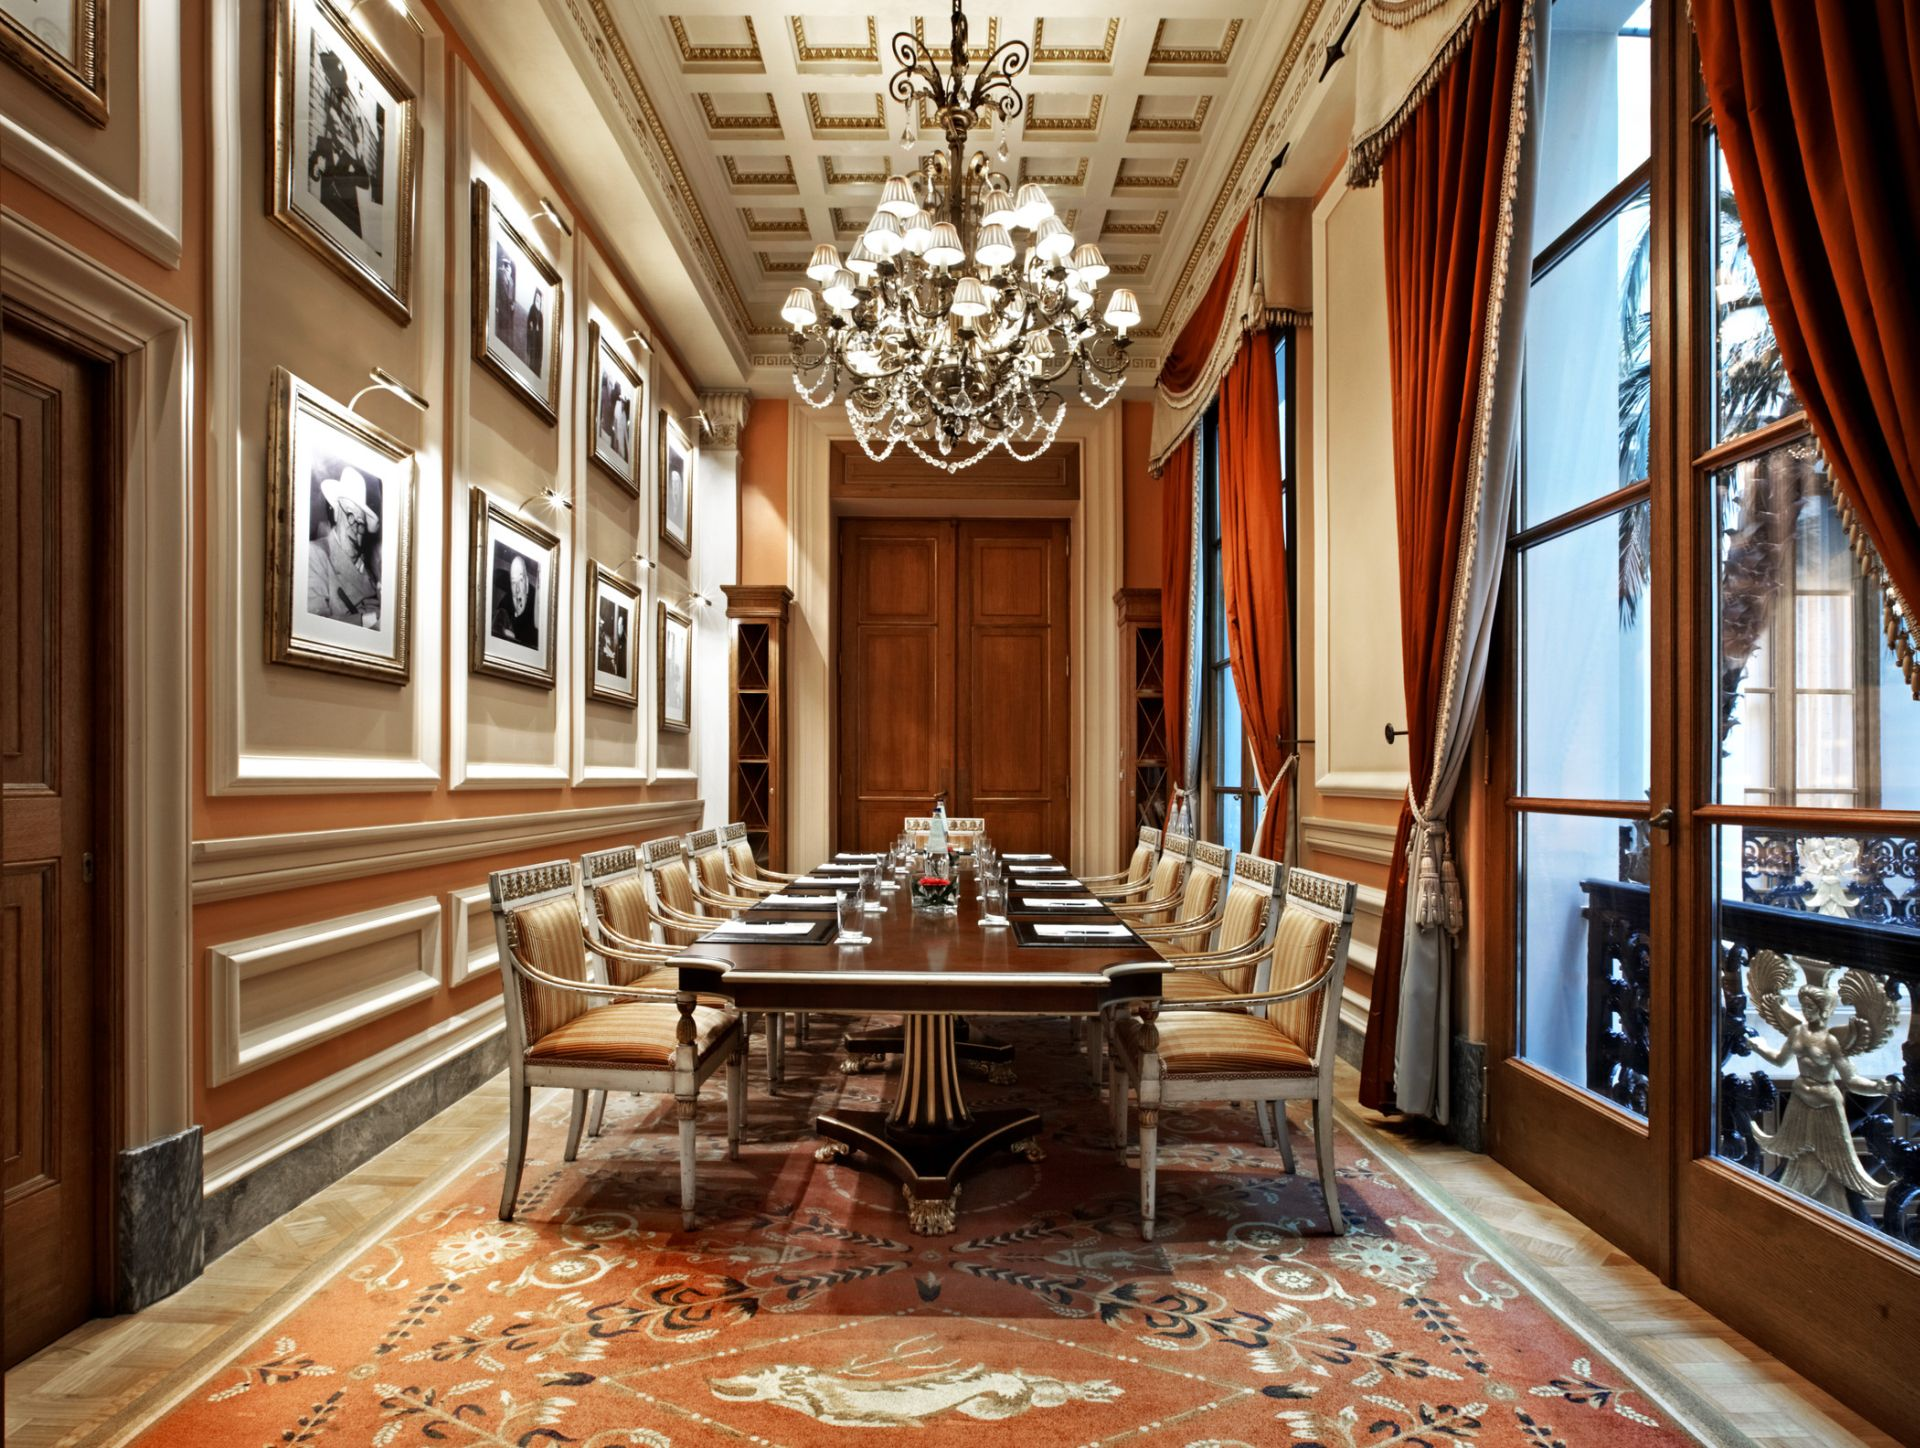 Luxury Conference Room/Offices   Doral, Fl.  Luxury Meeting Space